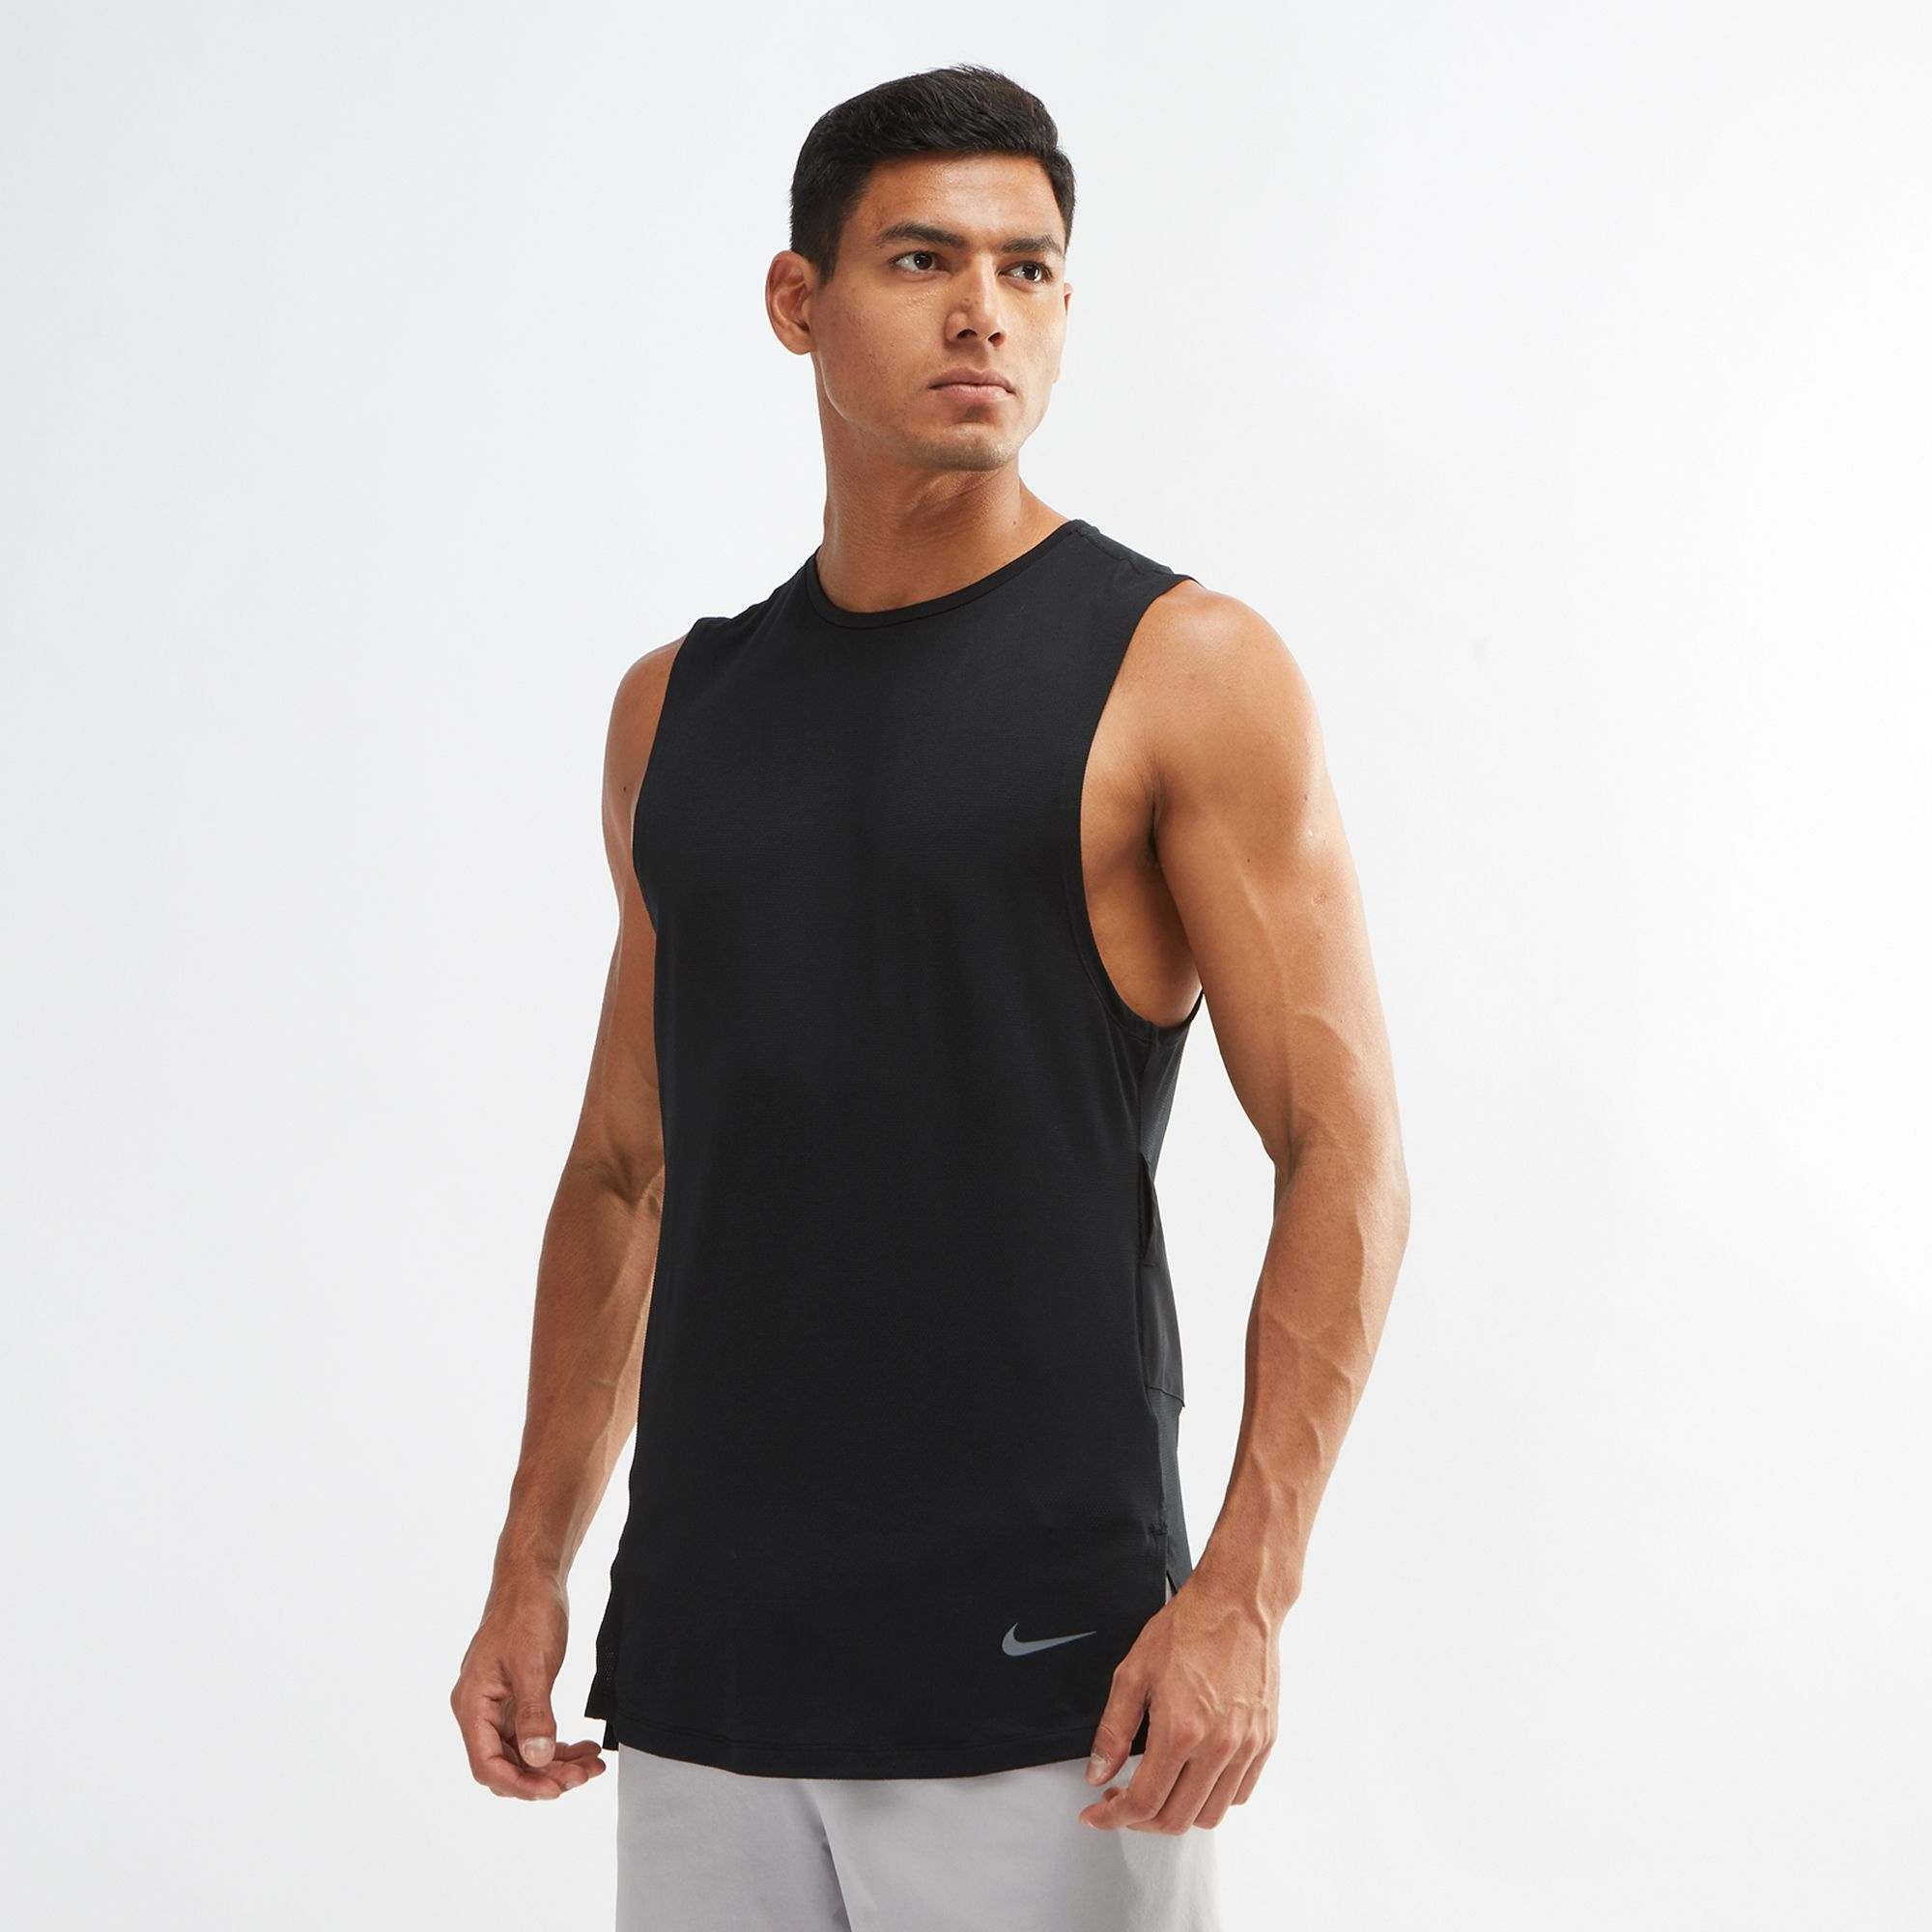 489f70d7 Nike Fitted Utility Training Tank Top | Tank Tops | Tops | Clothing ...